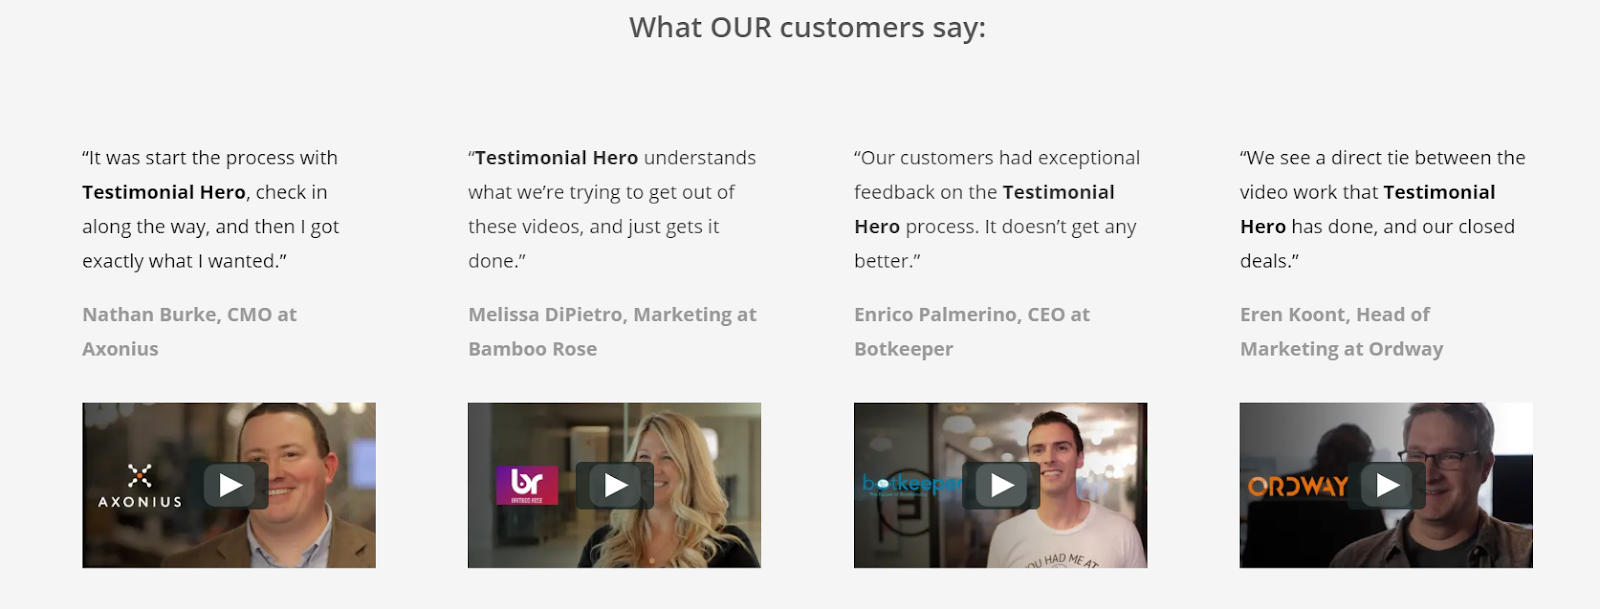 3 Easy Ways to Capture Tons of B2B Customer Testimonial Videos